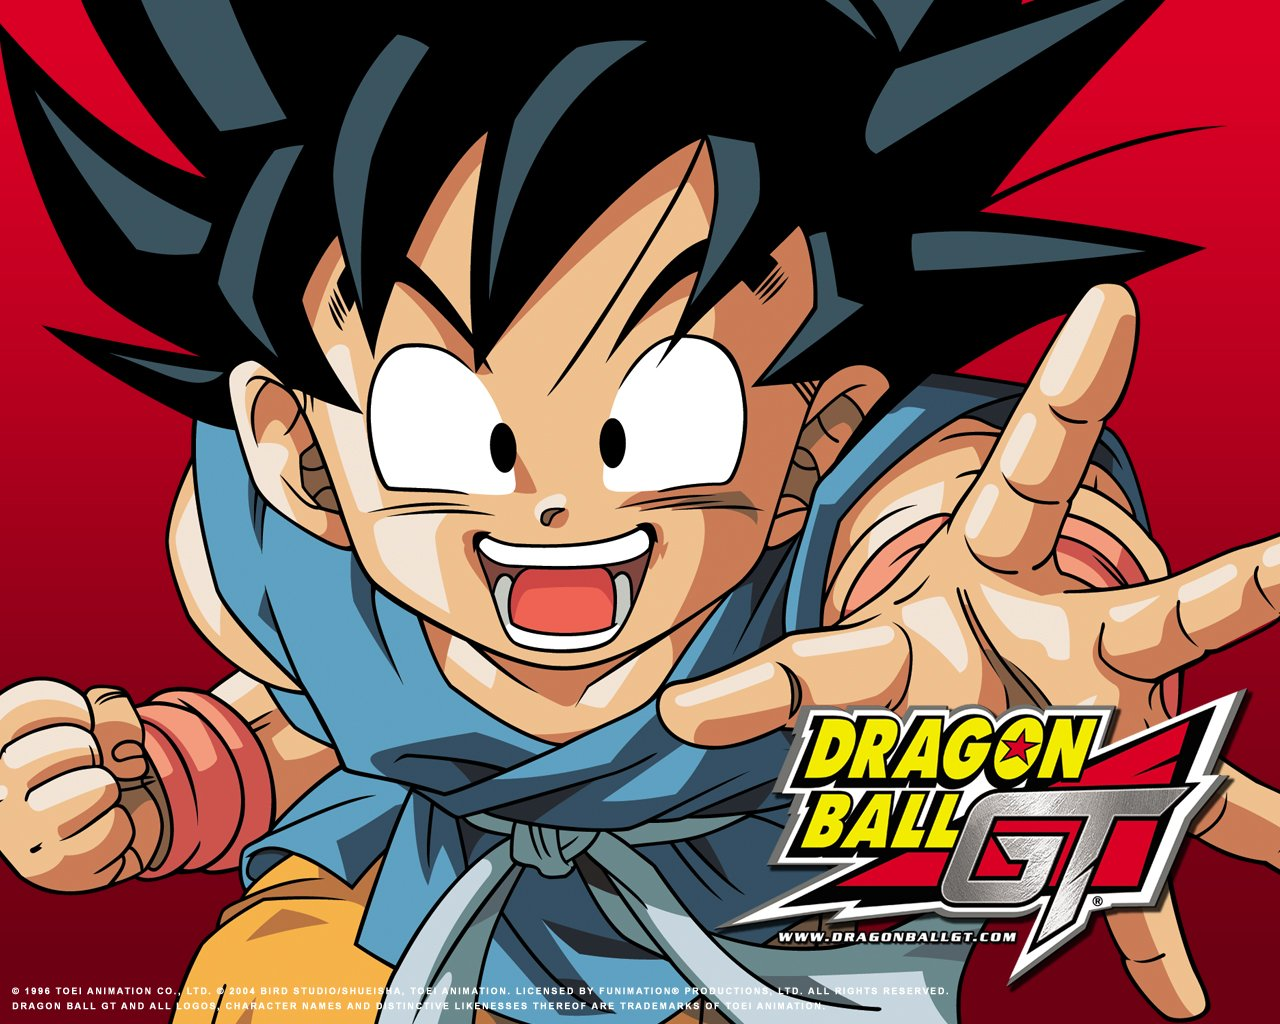 descargar saga completa de dragon ball z audio latino